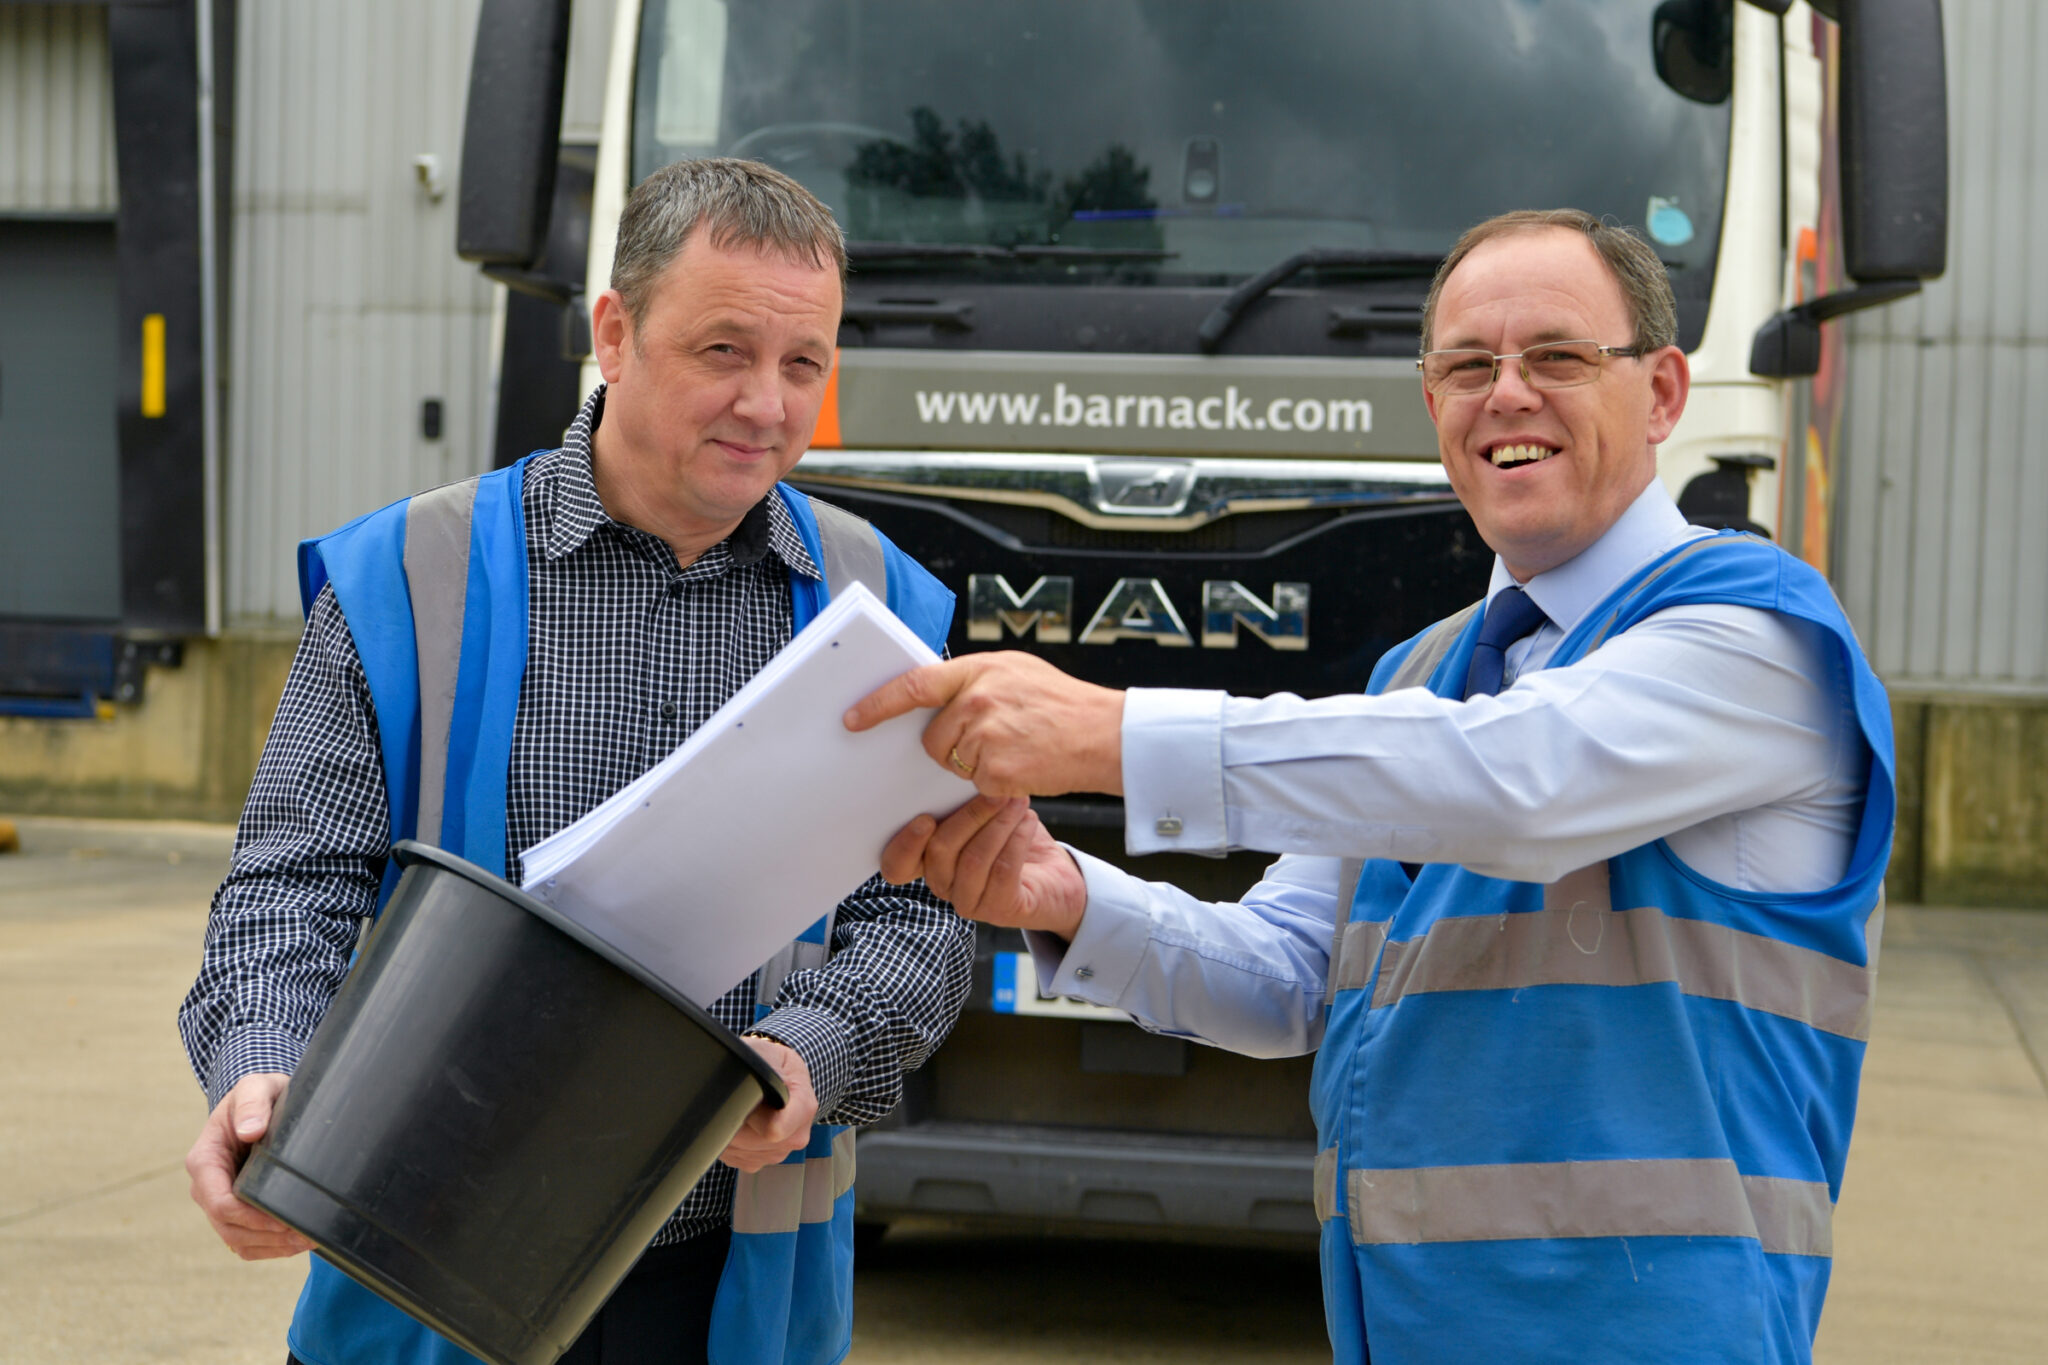 Peterborough based Barnack Storage and Logistics operations manager Charlie McGuire and MD Stephen Knight say goodbye to the paper based system they have traditionally used to manage their transport operations in favour of the Mandata TMS Go! cloud transport management system.